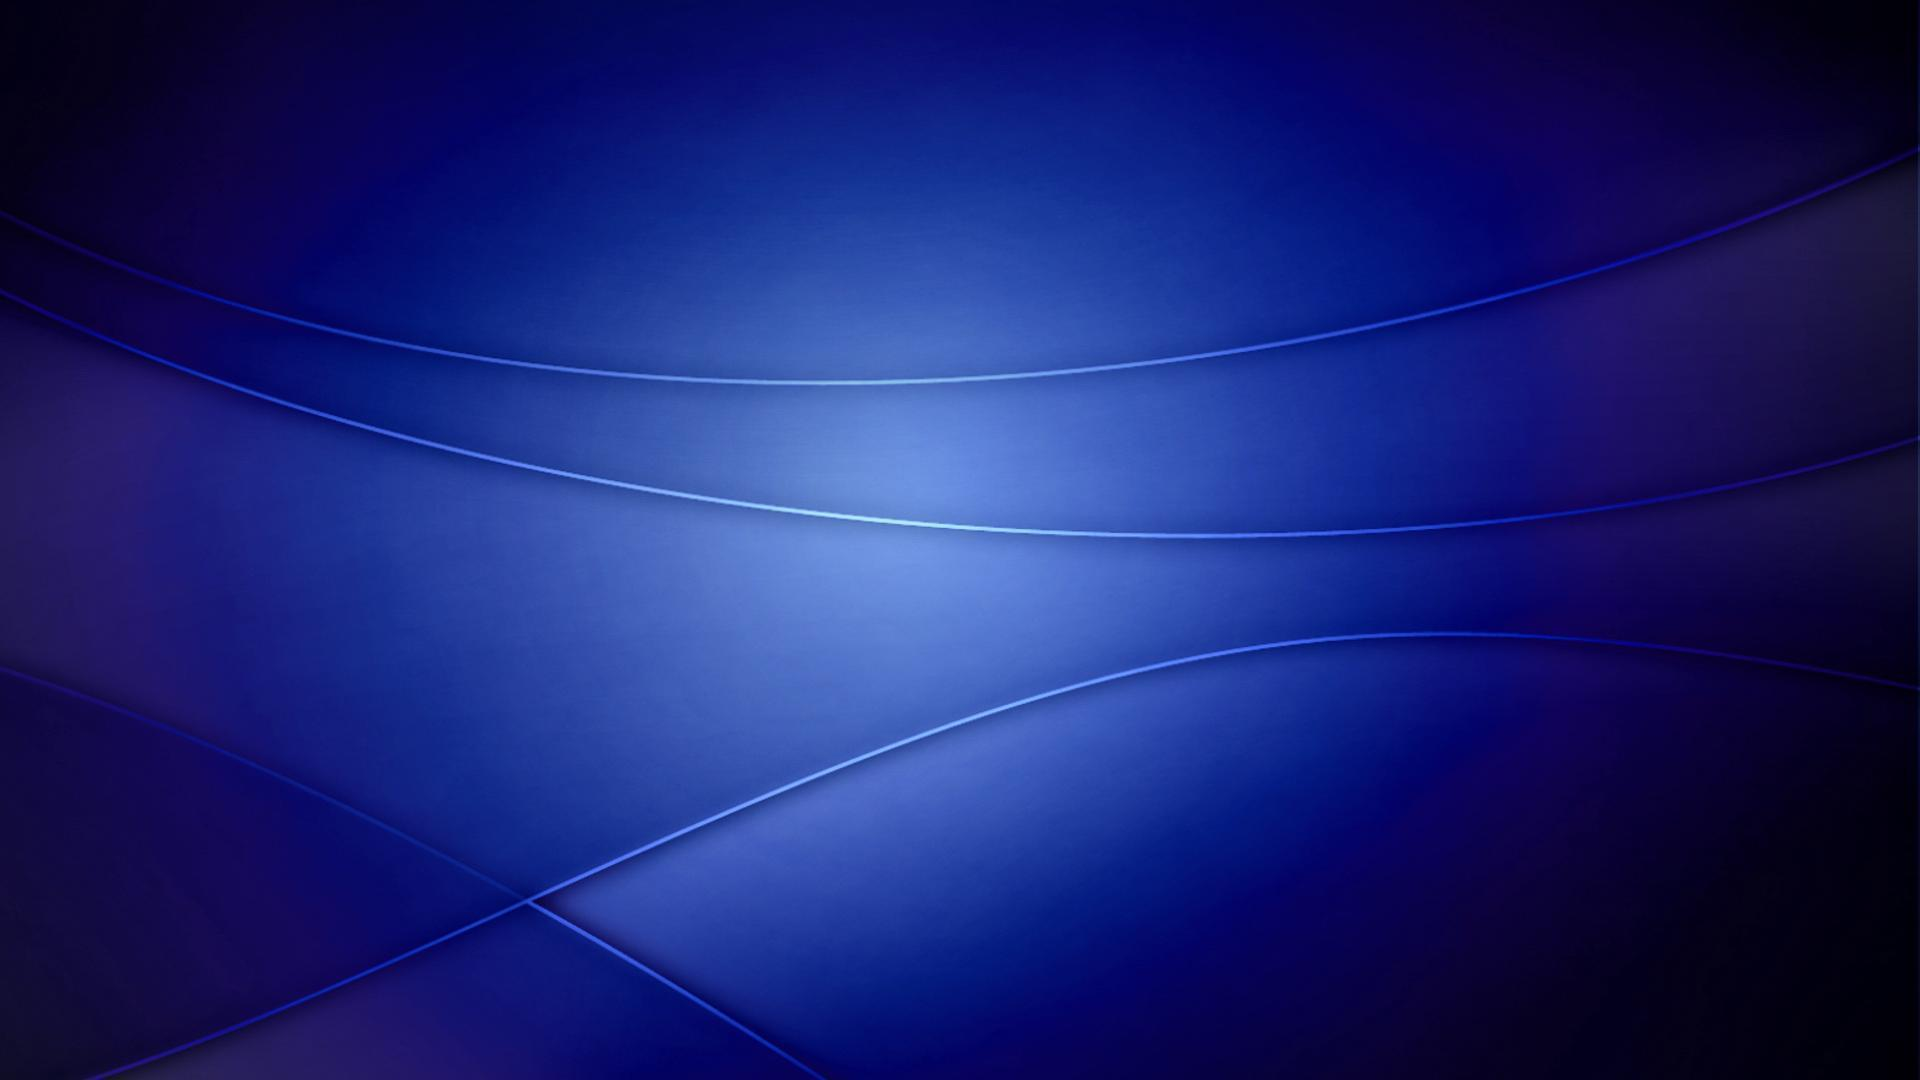 Deep Blue Backgrounds - Wallpaper cave